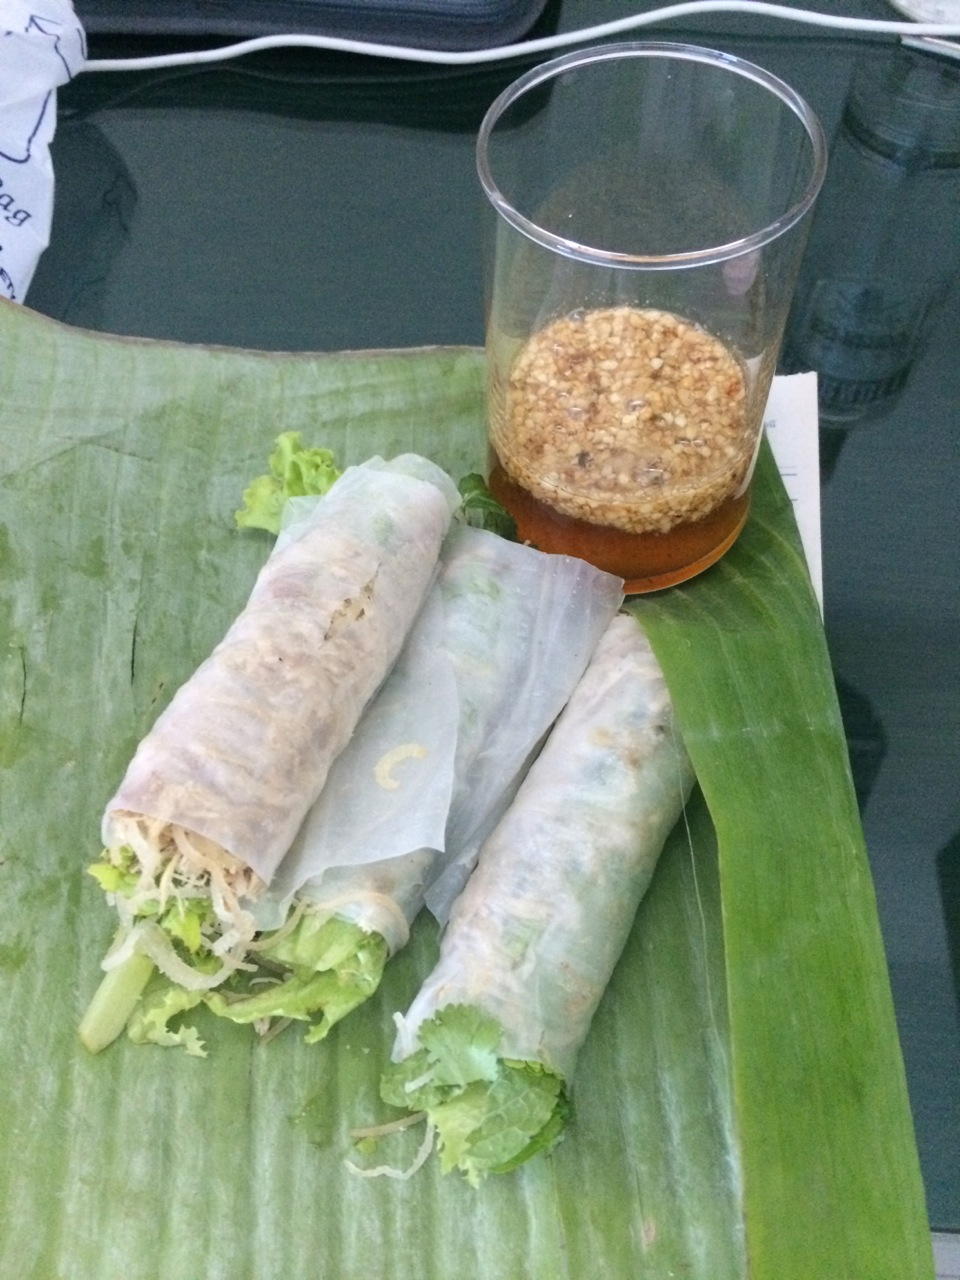 My afternoon snack from Indochine, a Vietnamese restaurant located only 100m from the T3 hotel in Ubon Ratchathani.